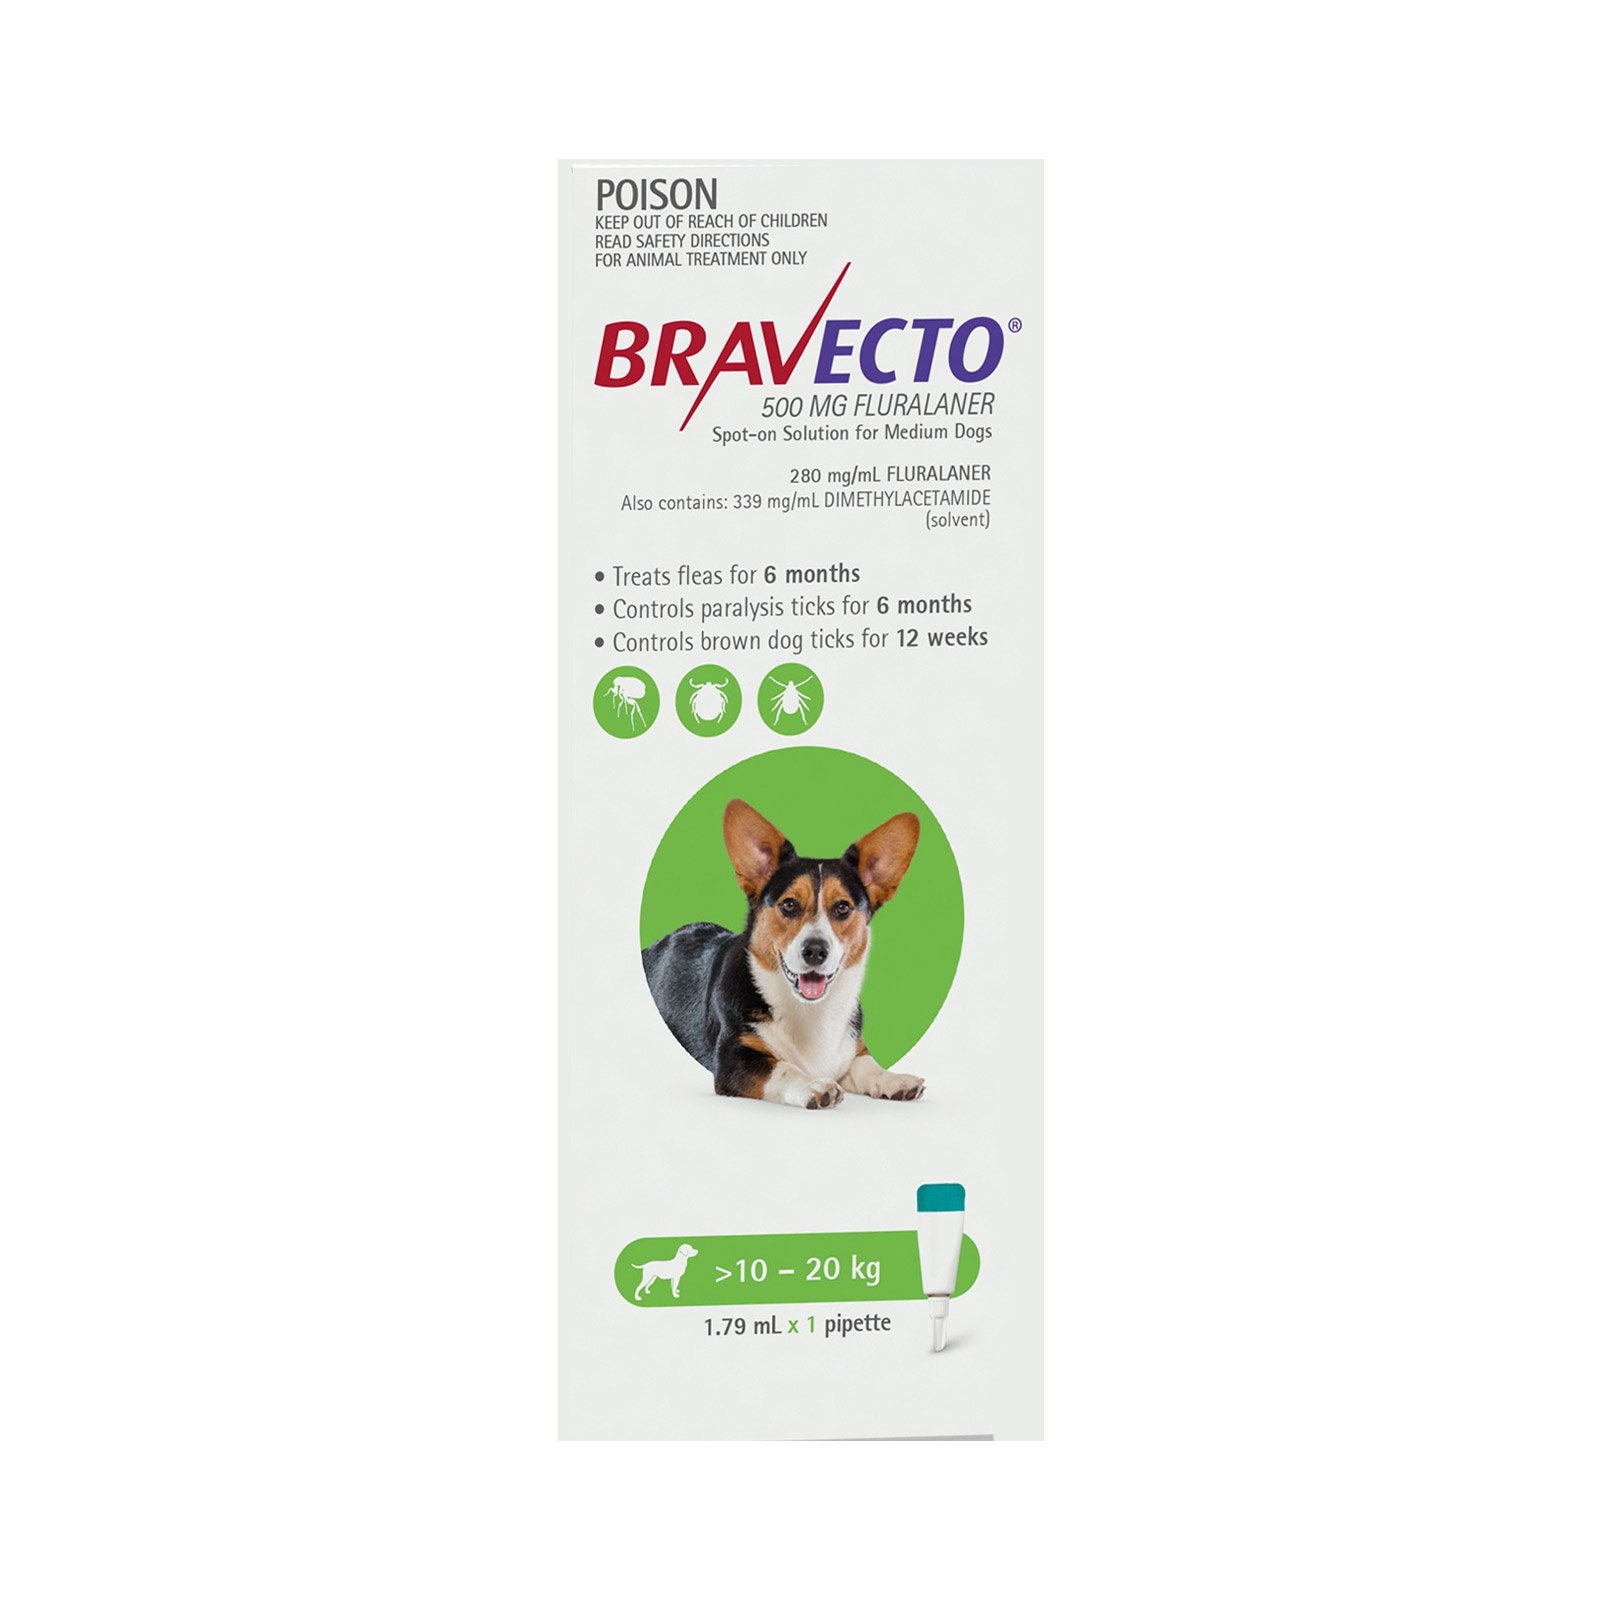 bravecto-for-dog-10-20kg-green-pipettes.jpg